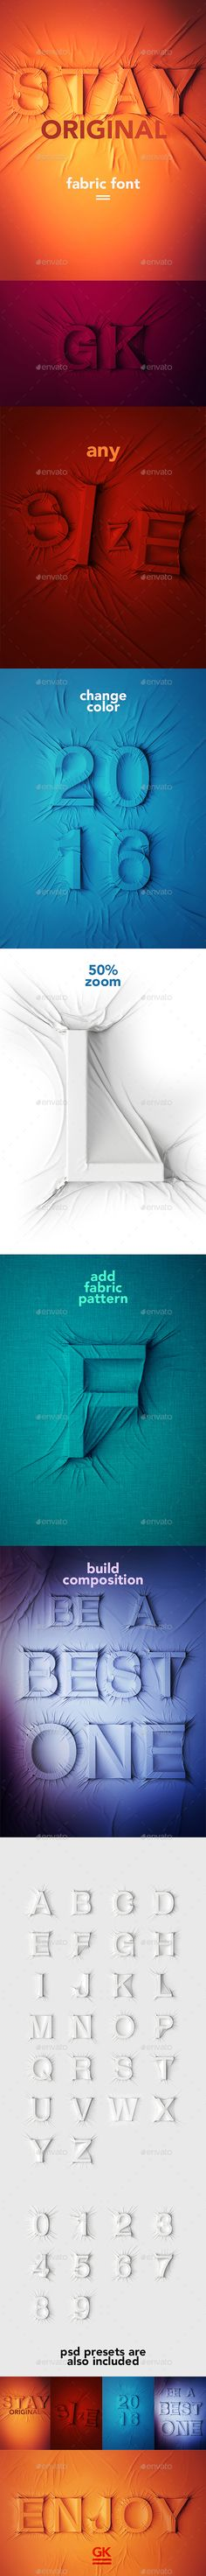 Fabric Font. Download here: https://graphicriver.net/item/fabric-font/17189521?ref=ksioks